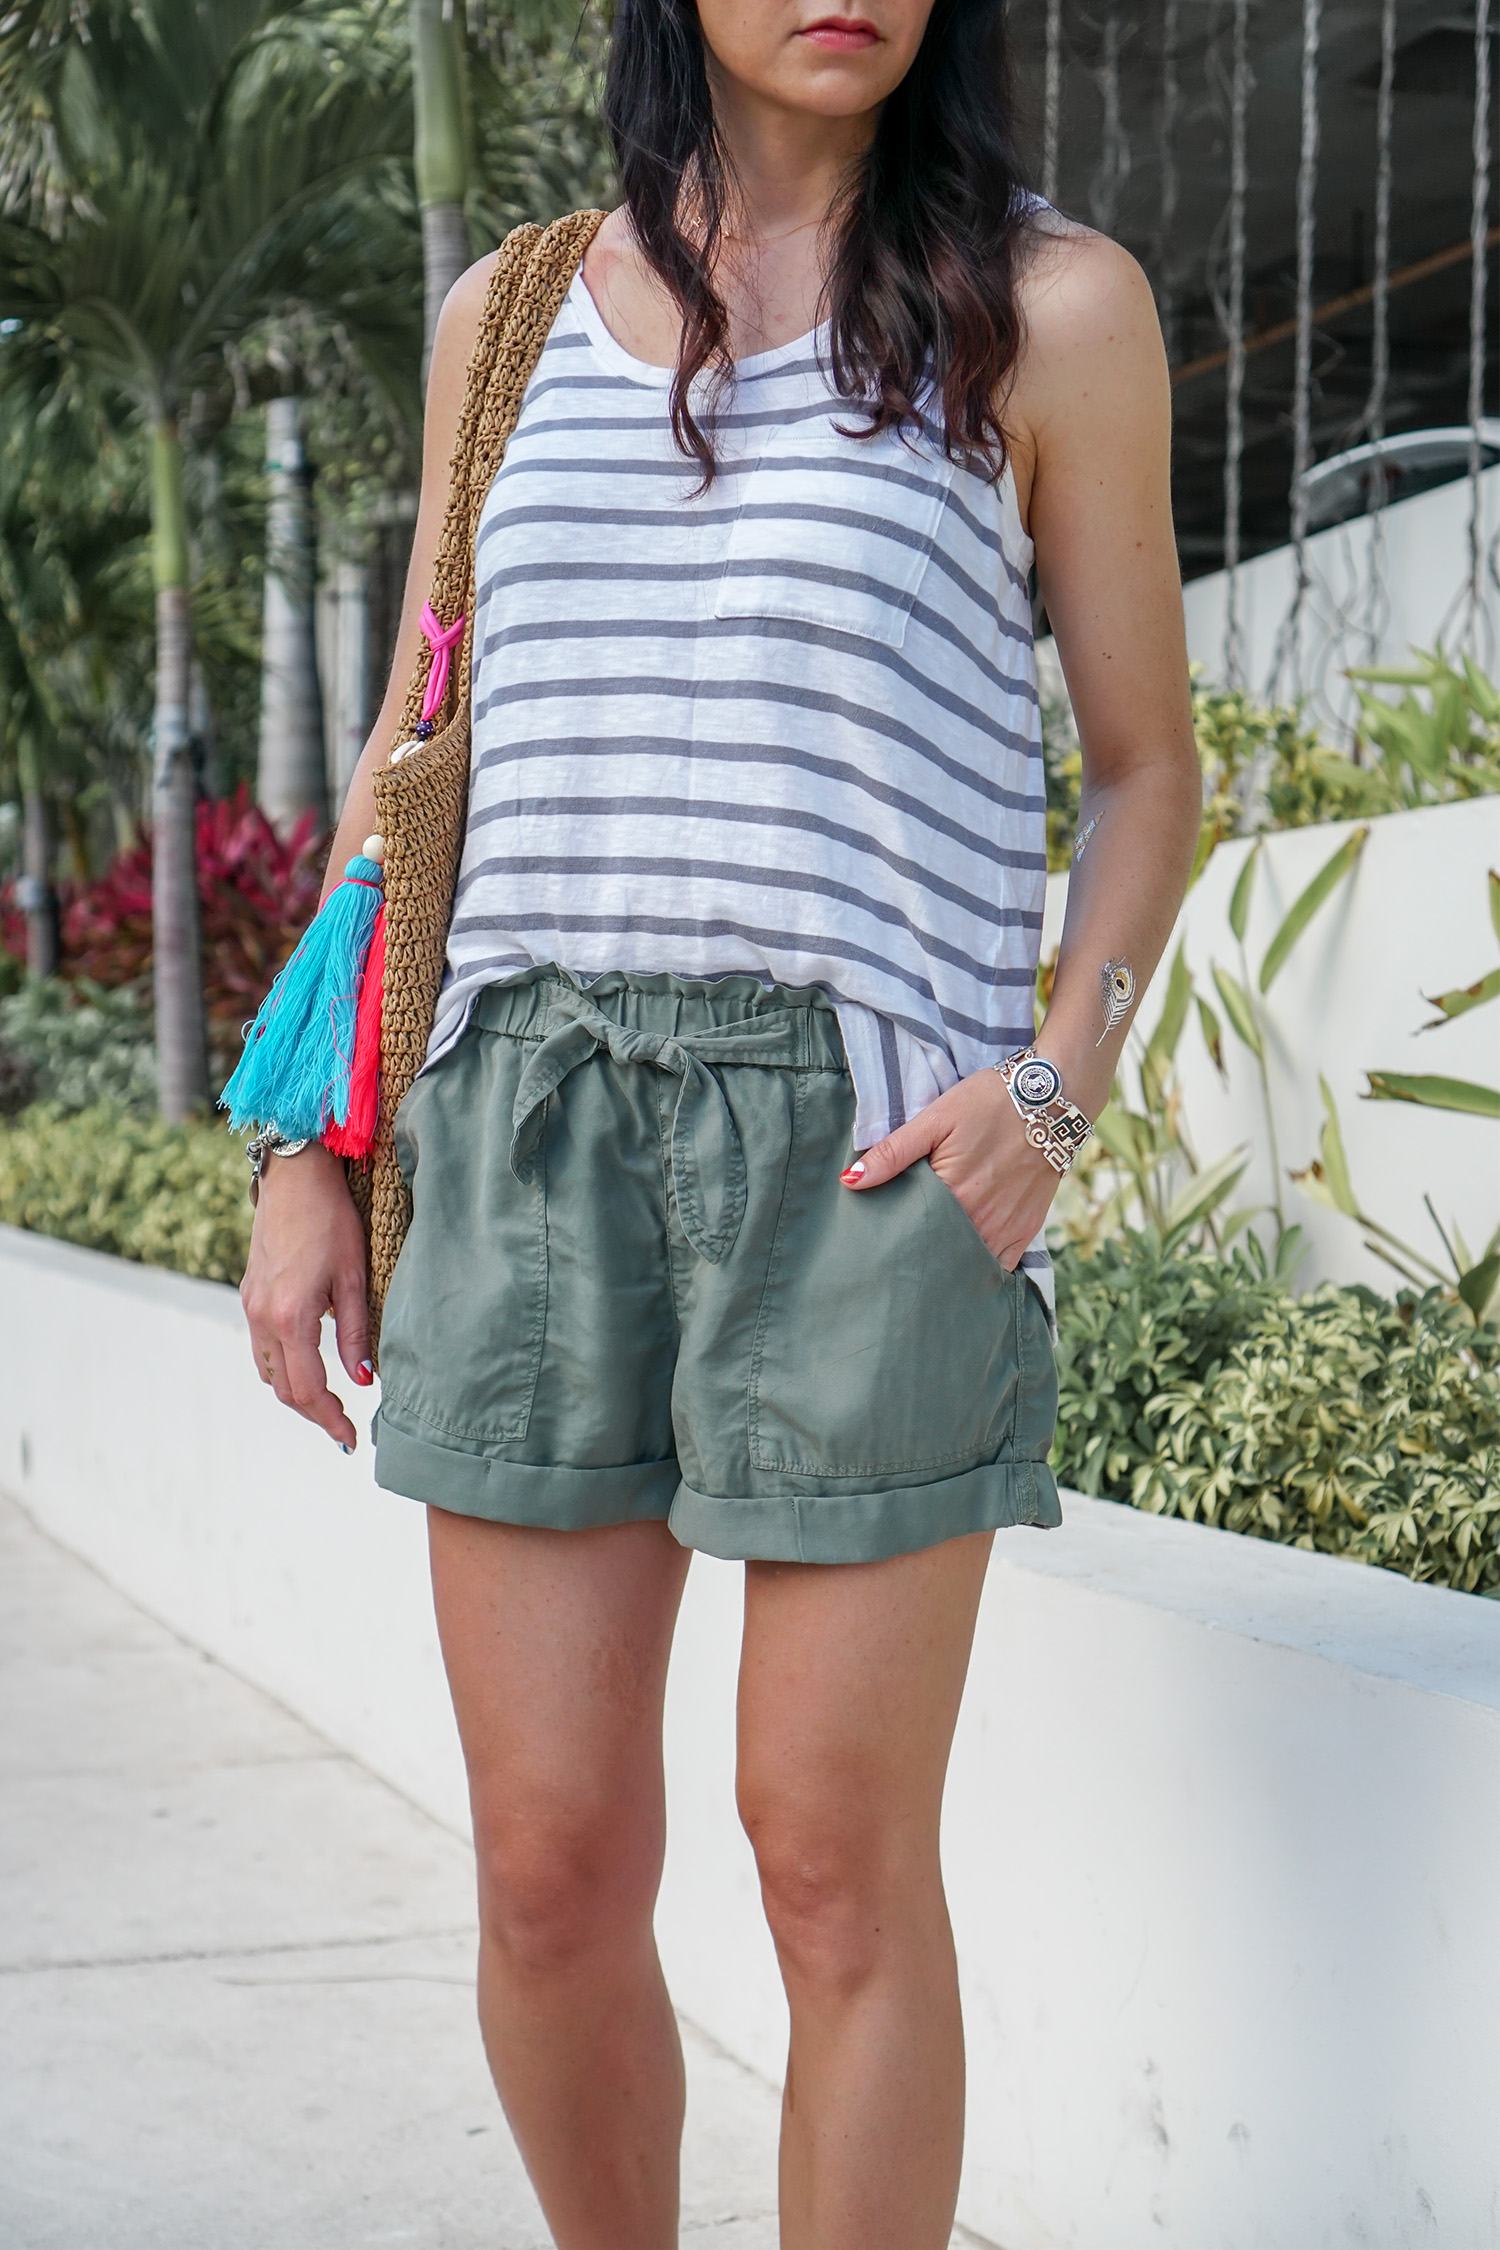 American Eagle Shorts, Dolce Vita Cait Sandals, Hat Attack Bag, Cute Vacation Outfit